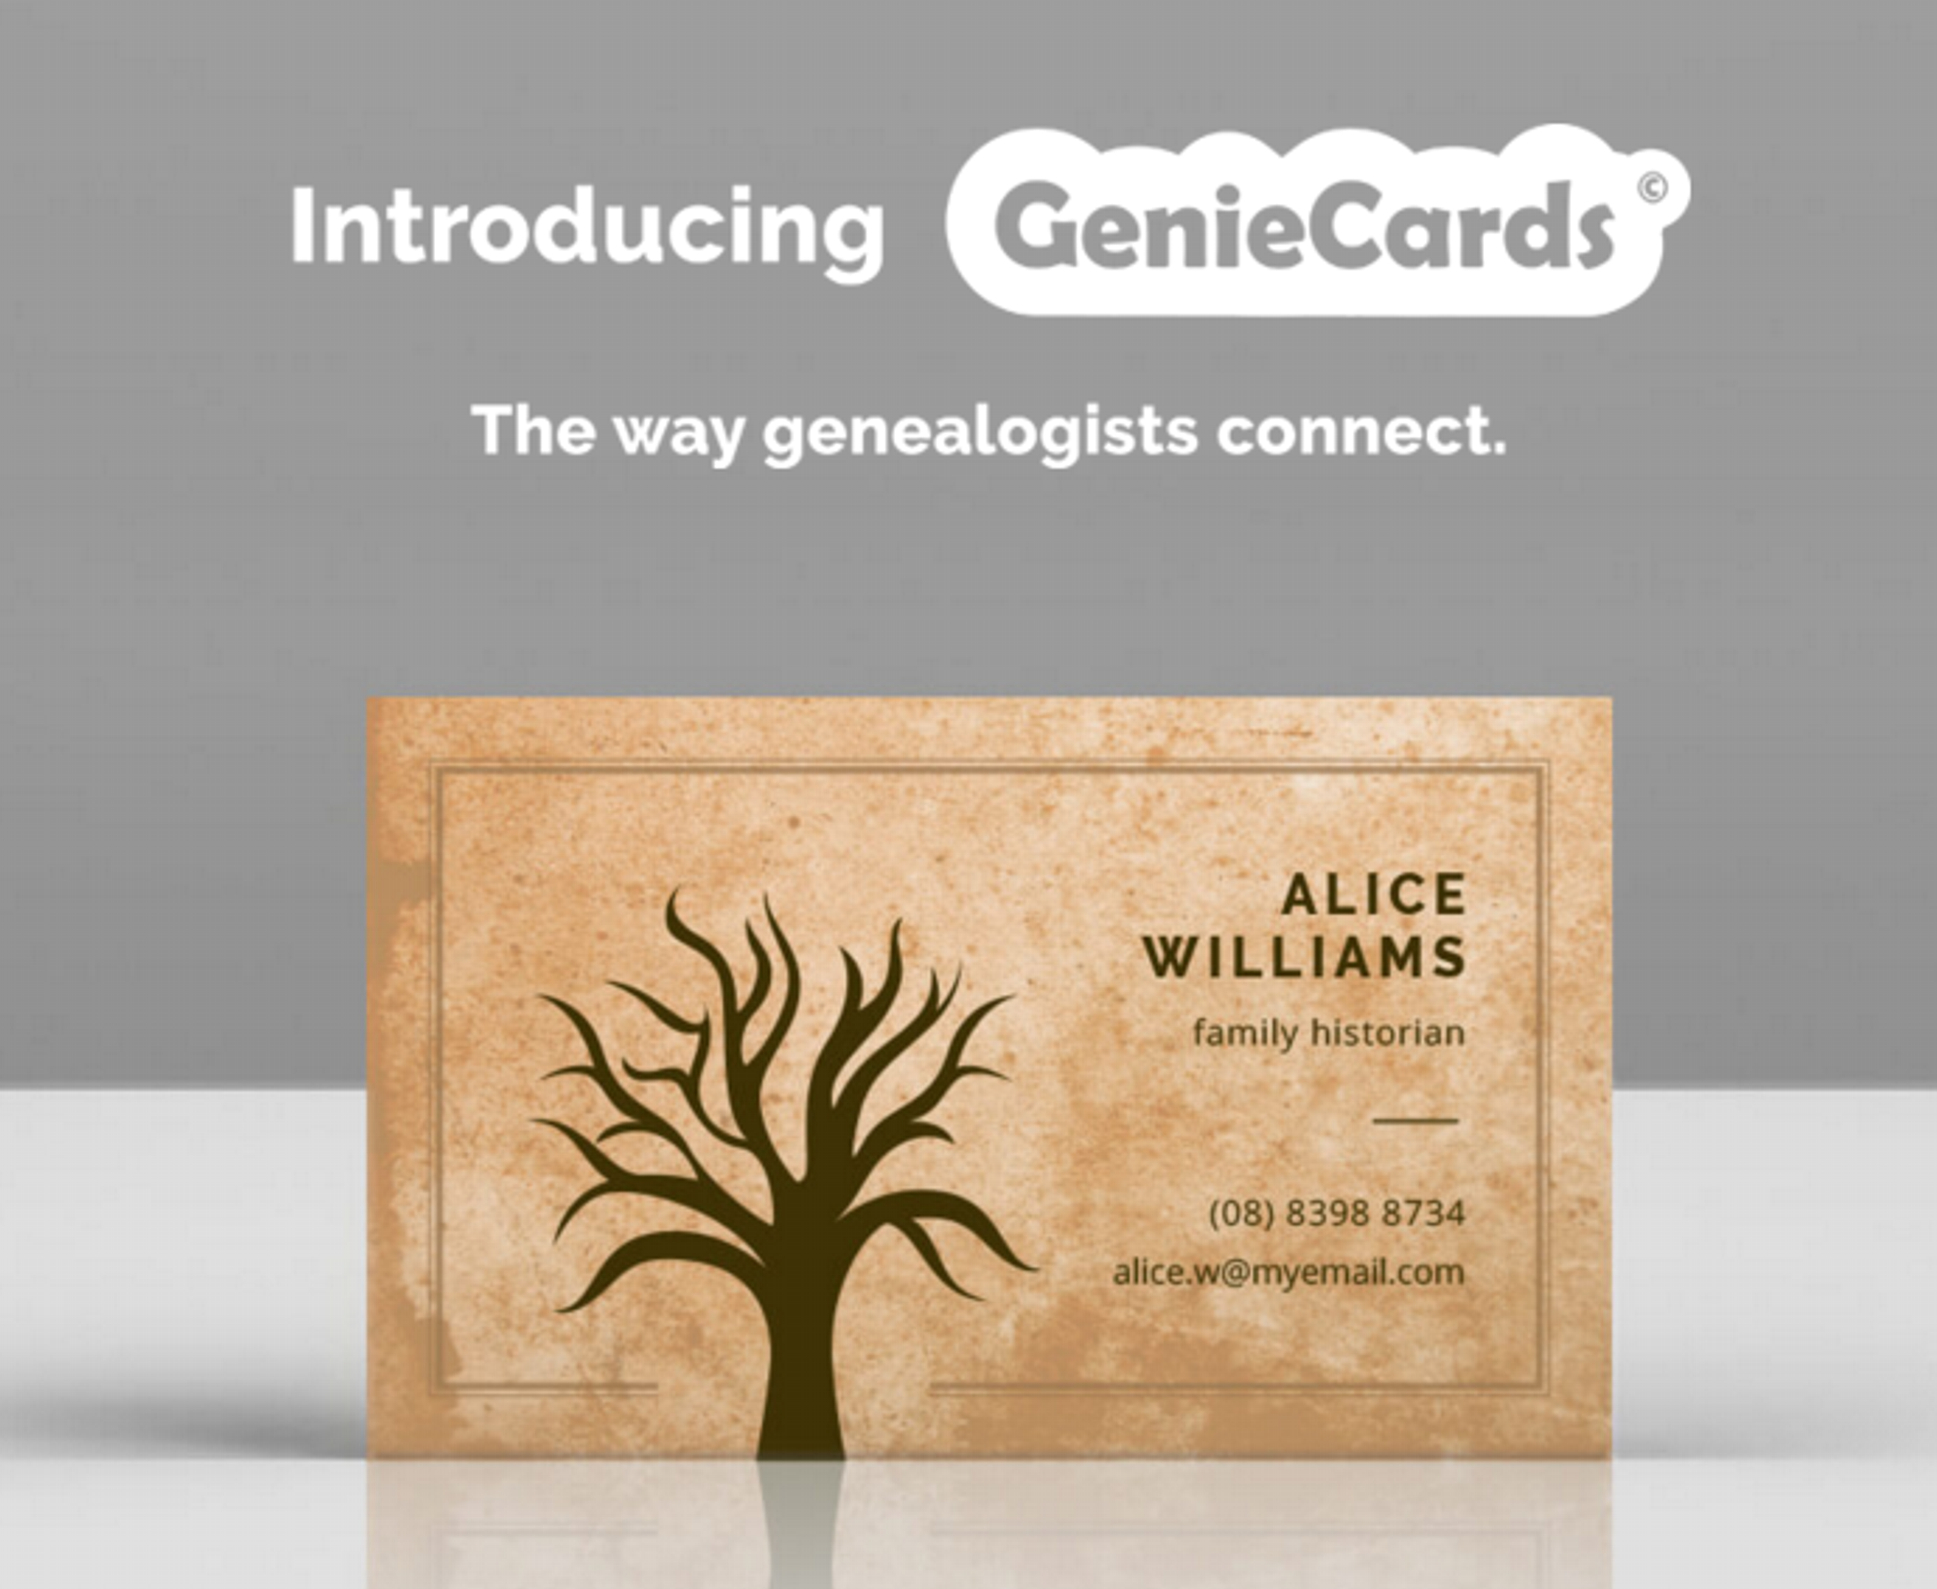 Super Specials and Freebie Offers on GenieCards